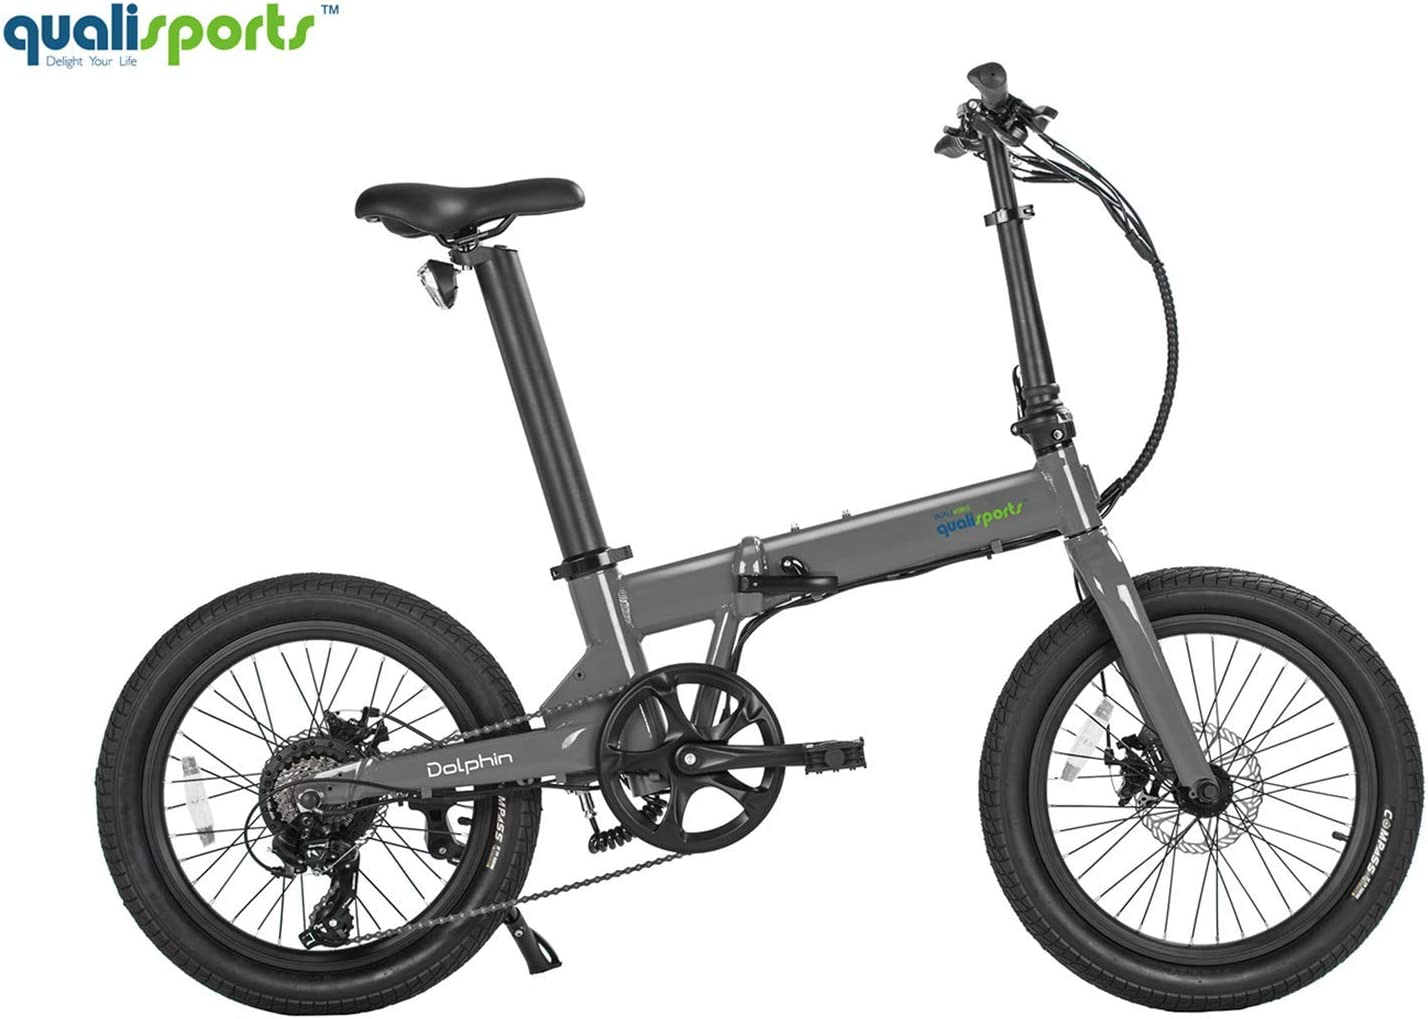 "20MPH Max Speed Hybrid Foldable Ebike for Adults from USA Warehouse Qualisports Dolphin Folding Electric Bicycle 20/"" Wide Tire E-Bike with Strong 350W Hub Motor Range 50+Miles 36V//14Ah Battery"